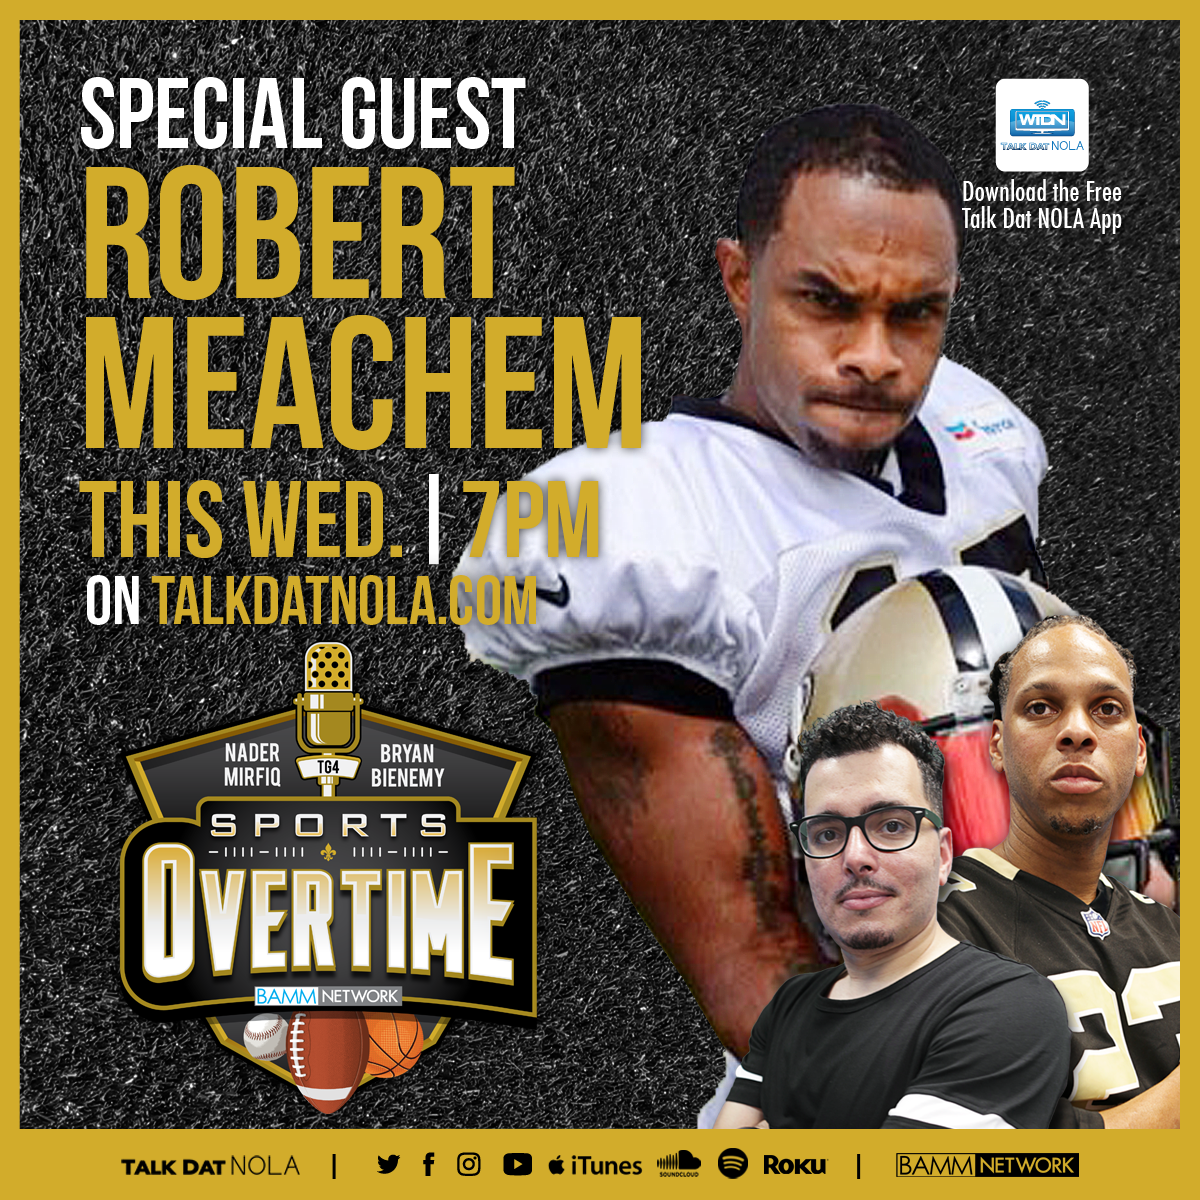 SportsOvertime_PromoGraphic_Guest_1200x1200_Meachem_B.png (1.69 MB)